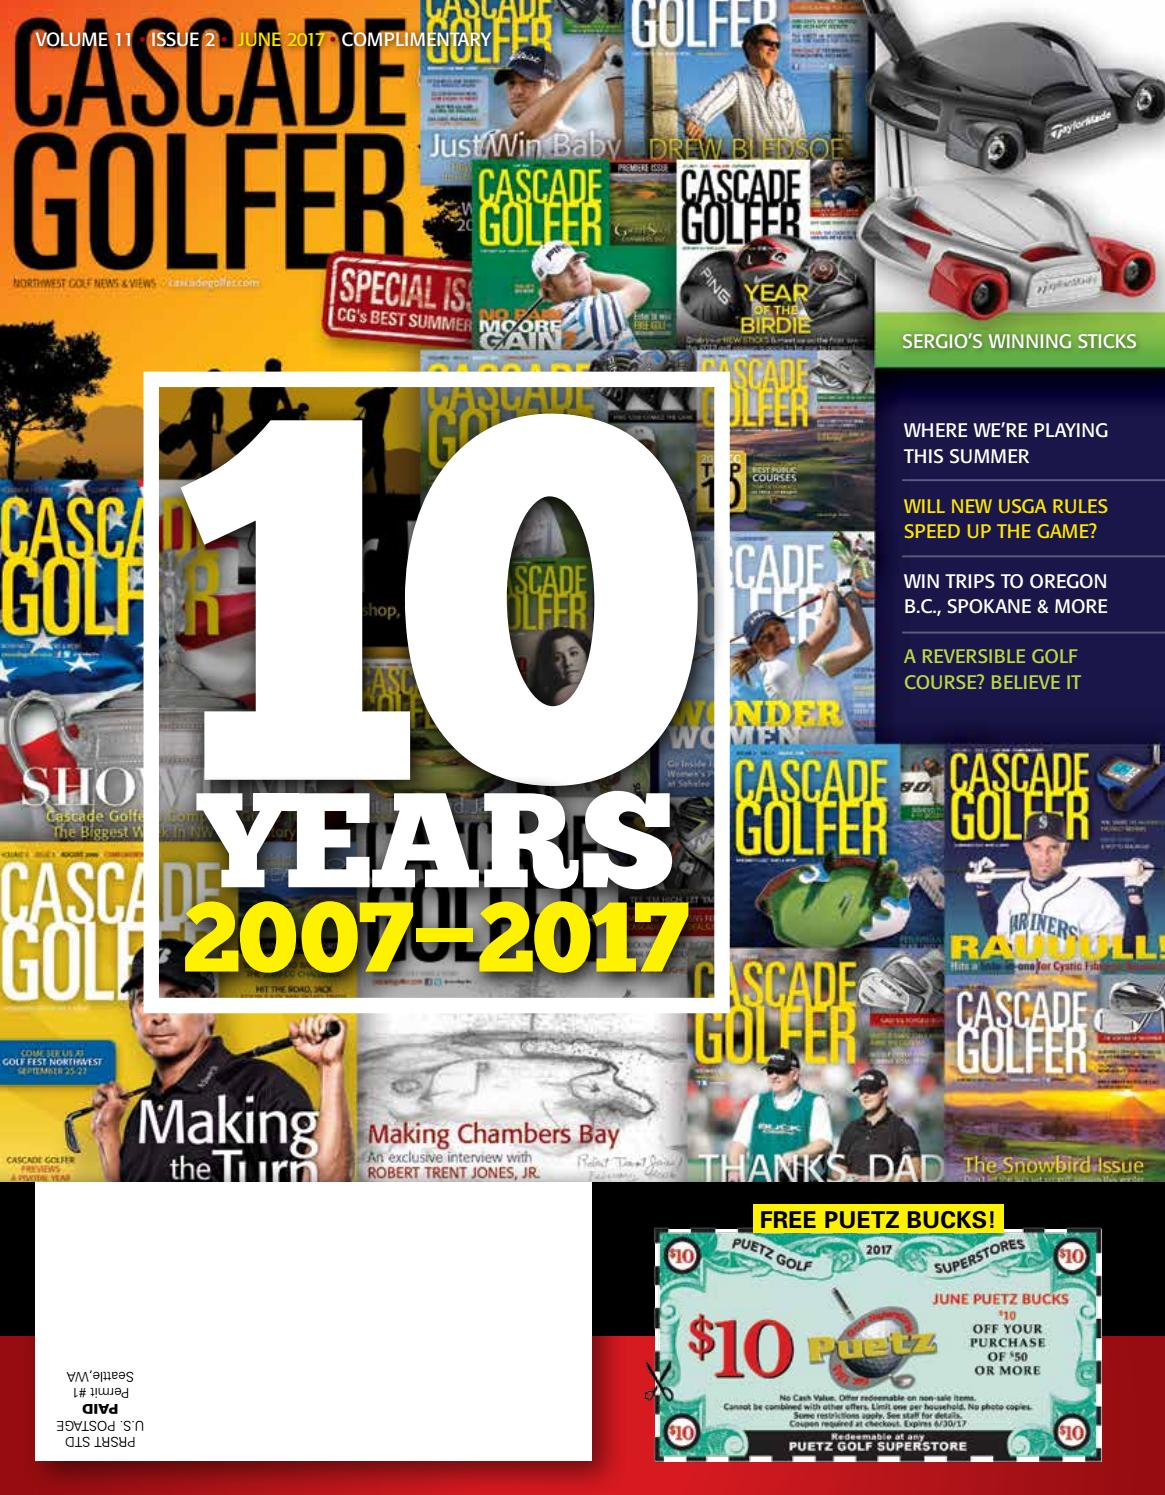 Cascade Golfer June 2017 by Varsity Communications - issuu 575dfb5a1aec